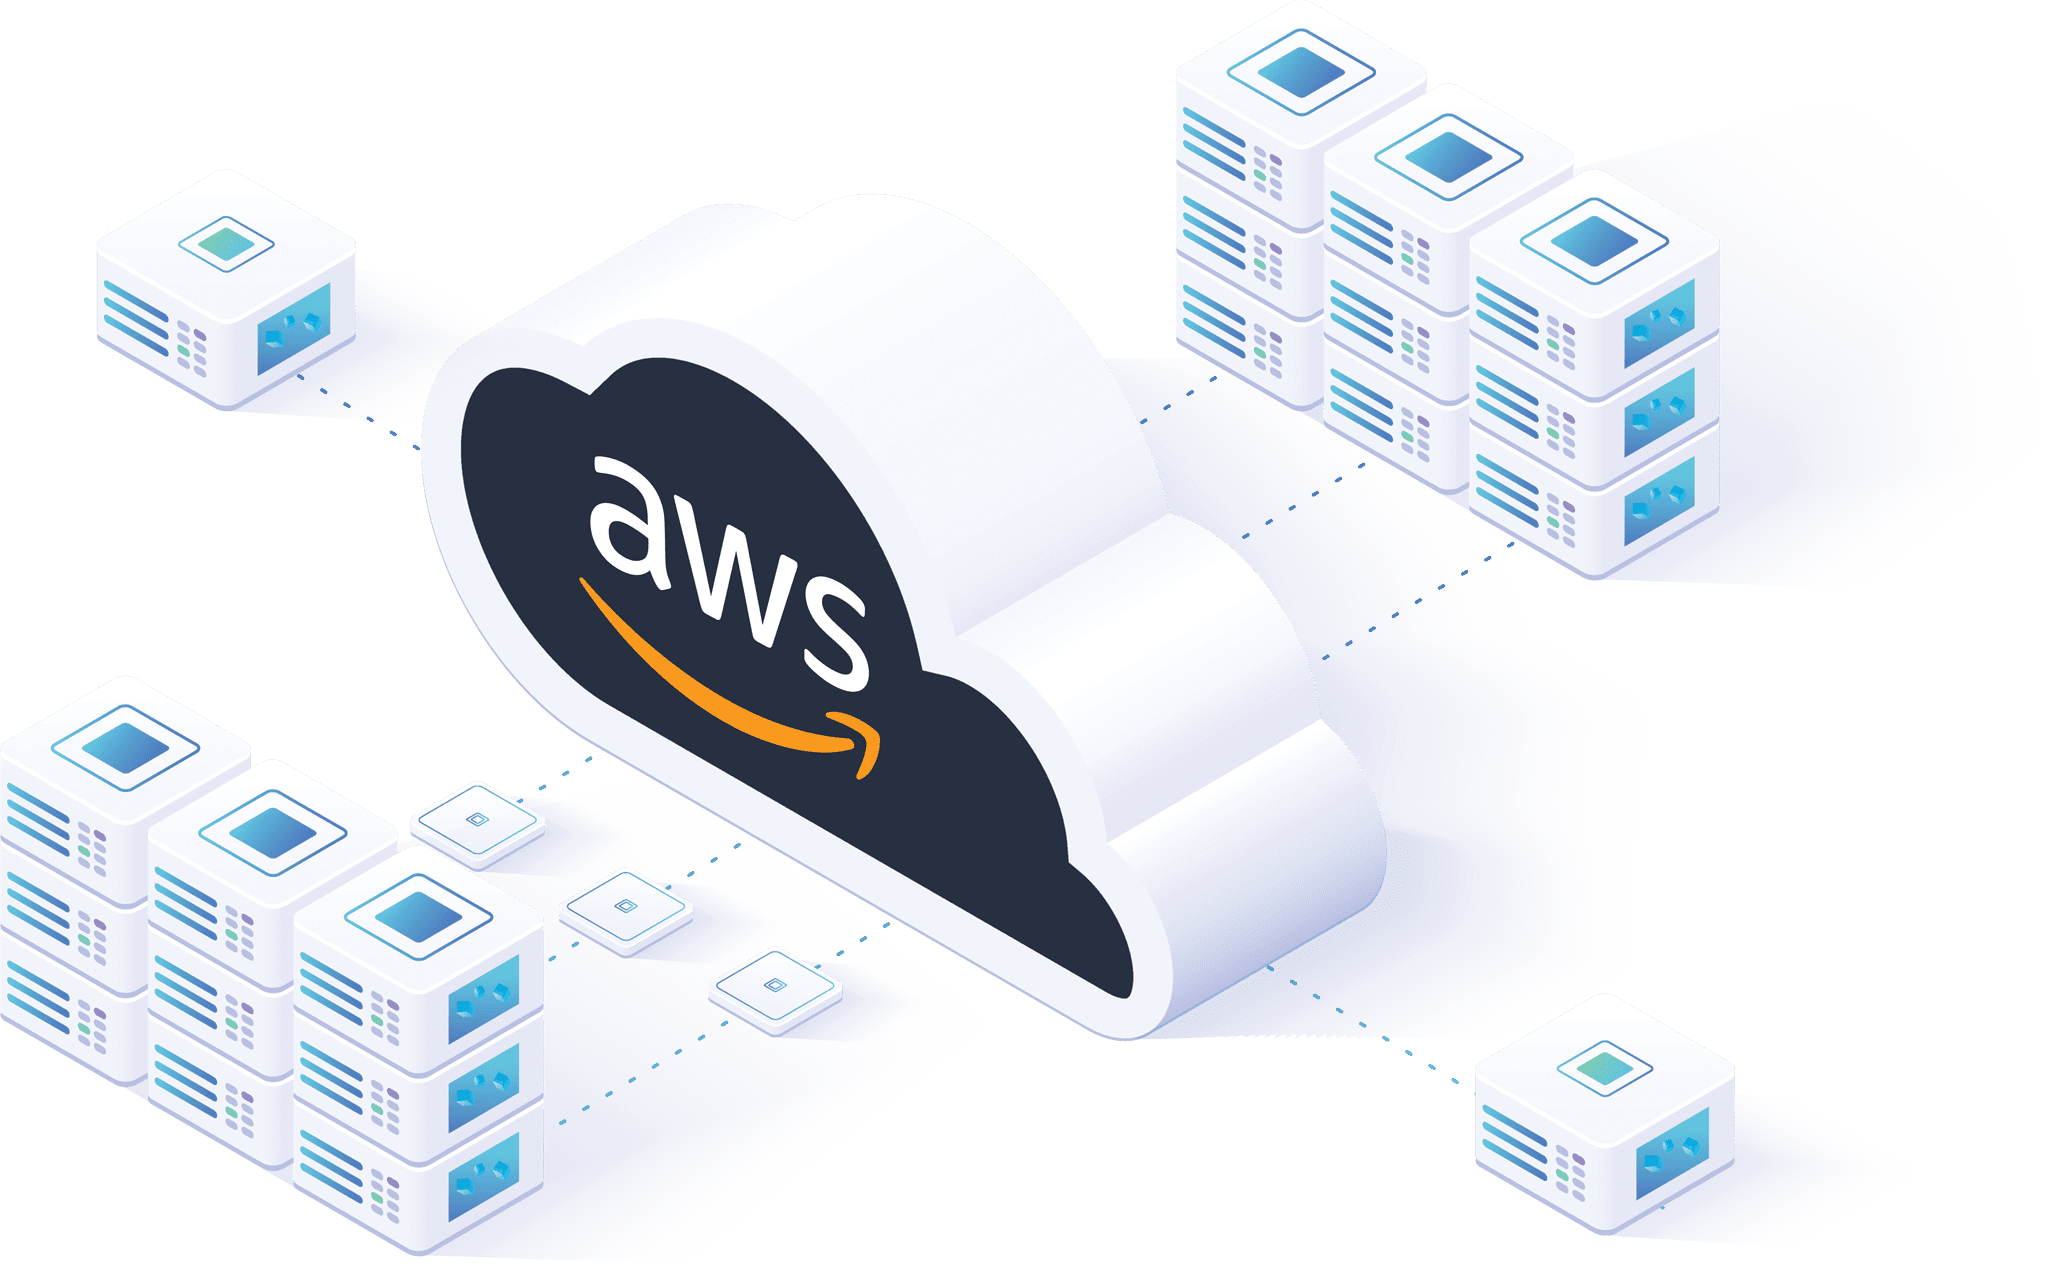 aws graphic